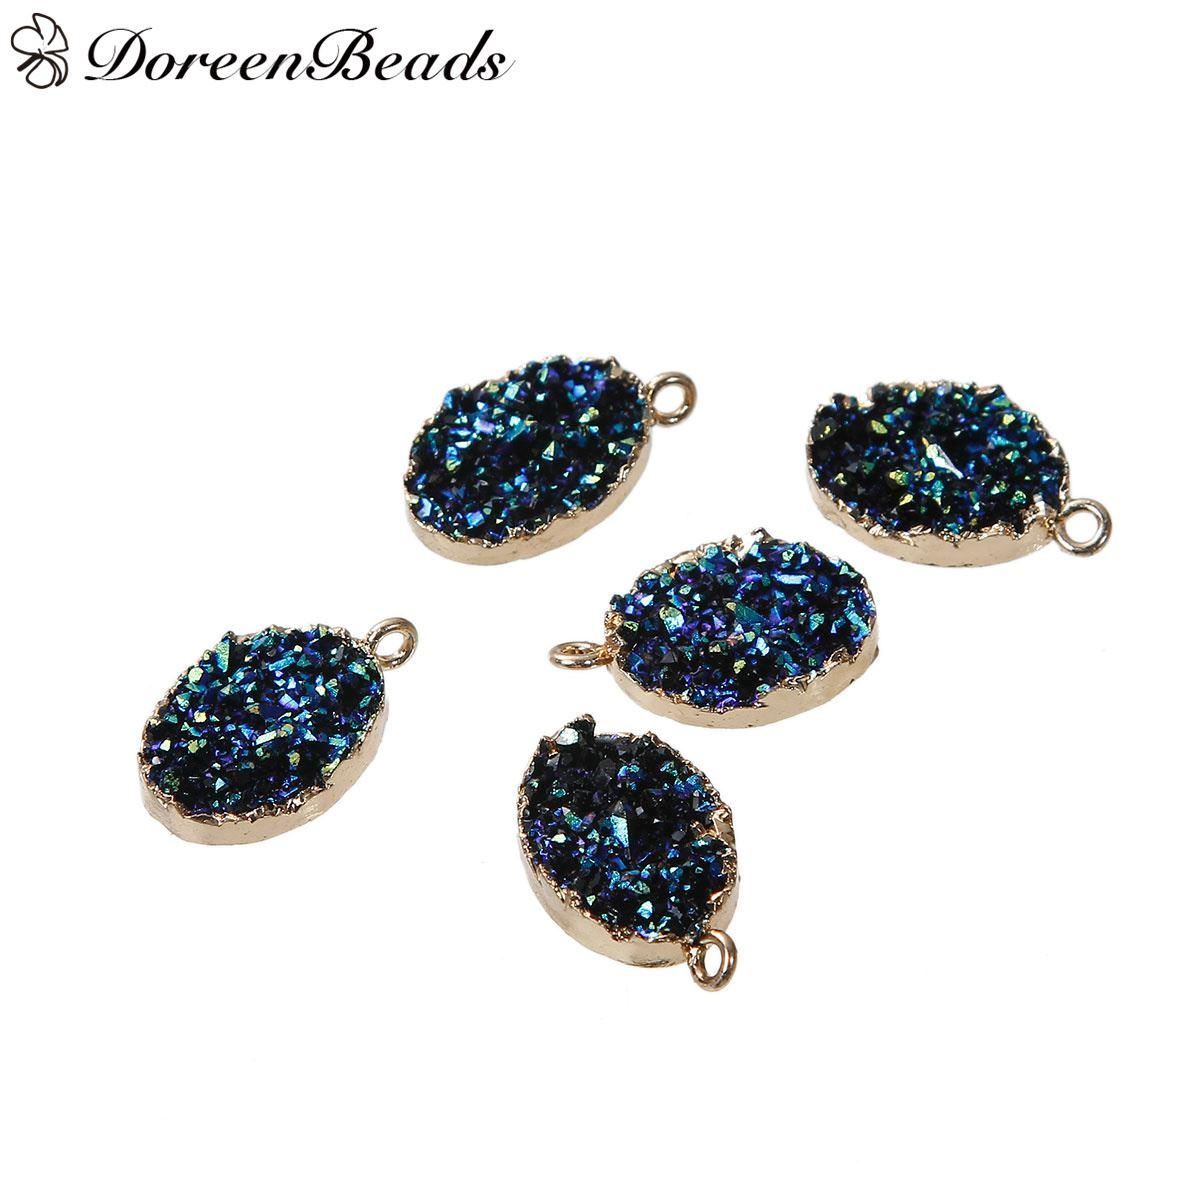 "Resin Druzy /Drusy Charms Oval Gold Plated Blue AB Color 22mm x13mm( 7/8"" x 4/8"") - 21mm x13mm( 7/8"" x 4/8""), 2 PCs 2016 new Free shipping j"